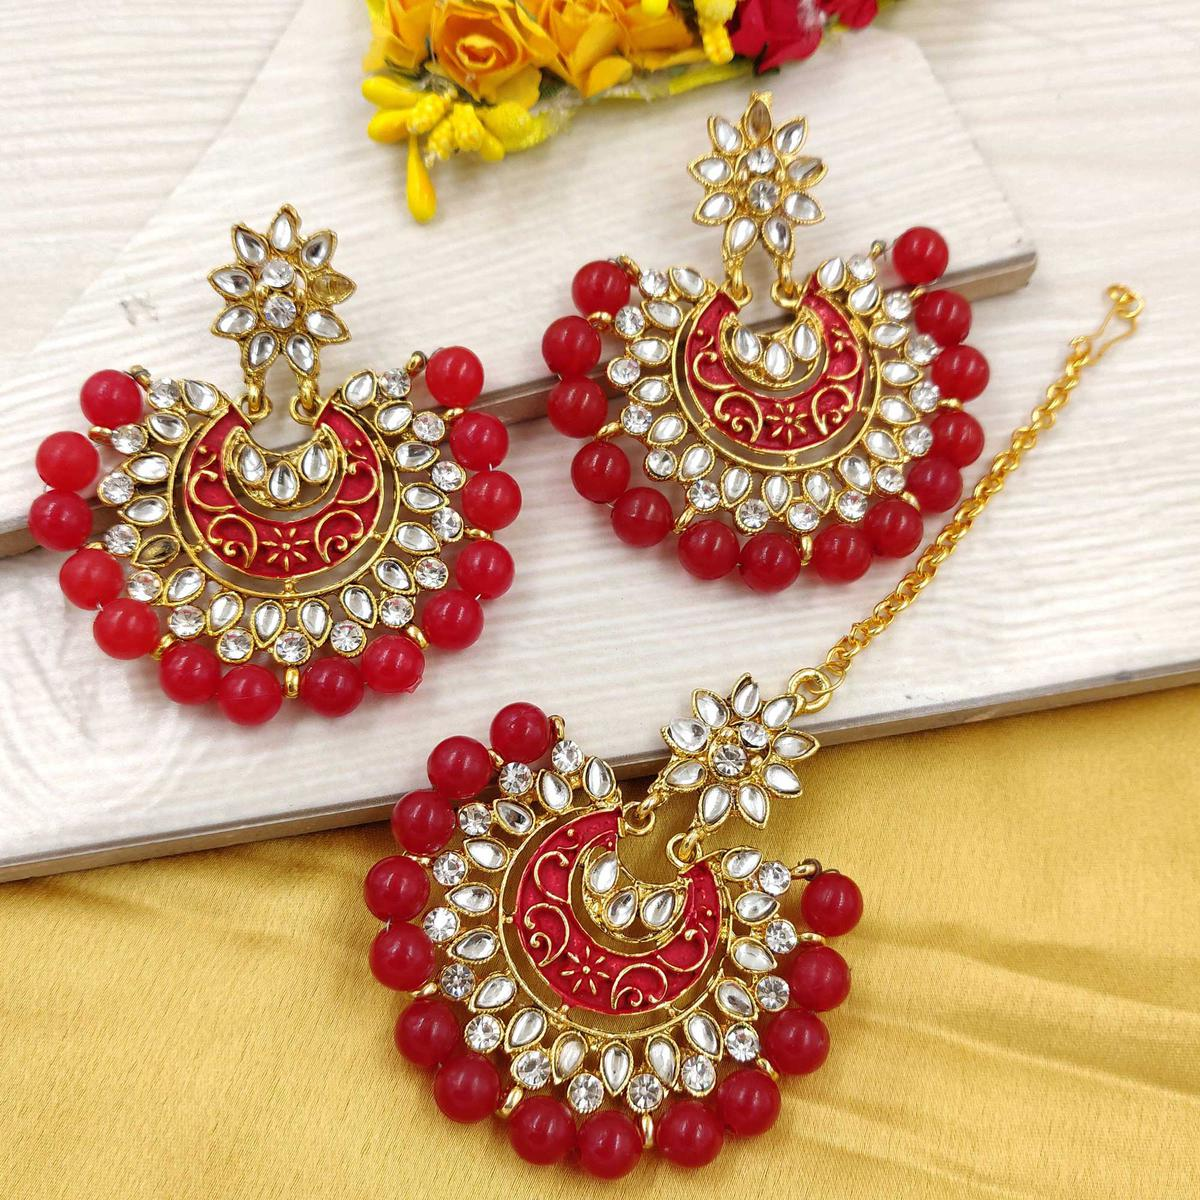 Zaffre Collections - Latest Round Maroon Maang Tikka with Earrings Set for Women and Girls